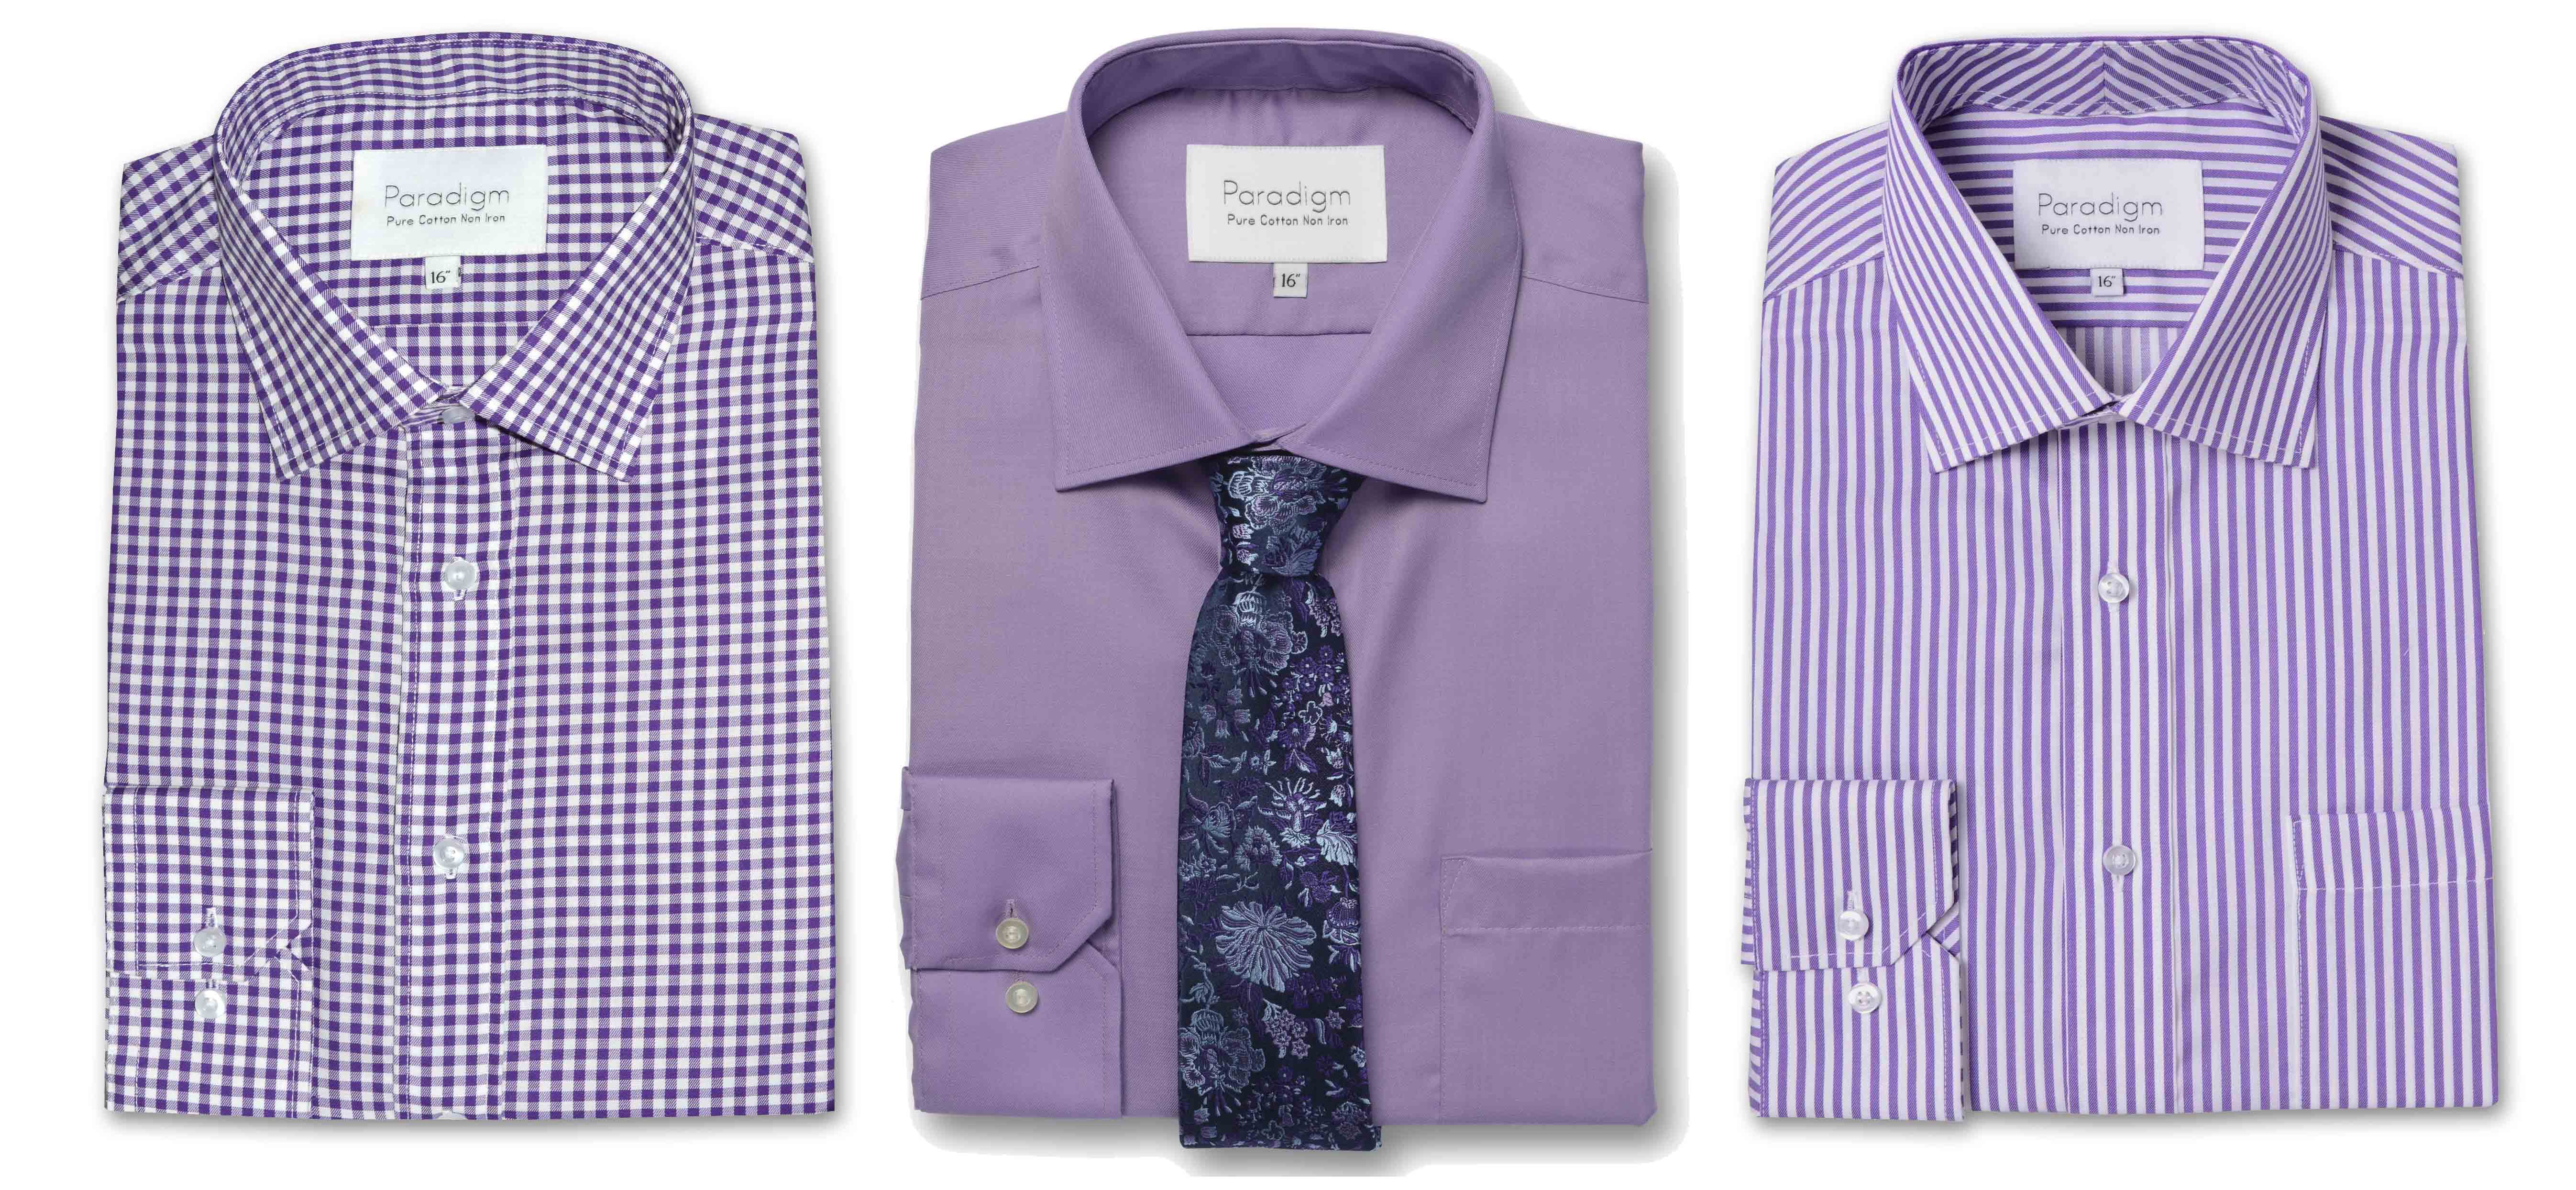 Shop Double TWO Paradigm Shirts in Purple